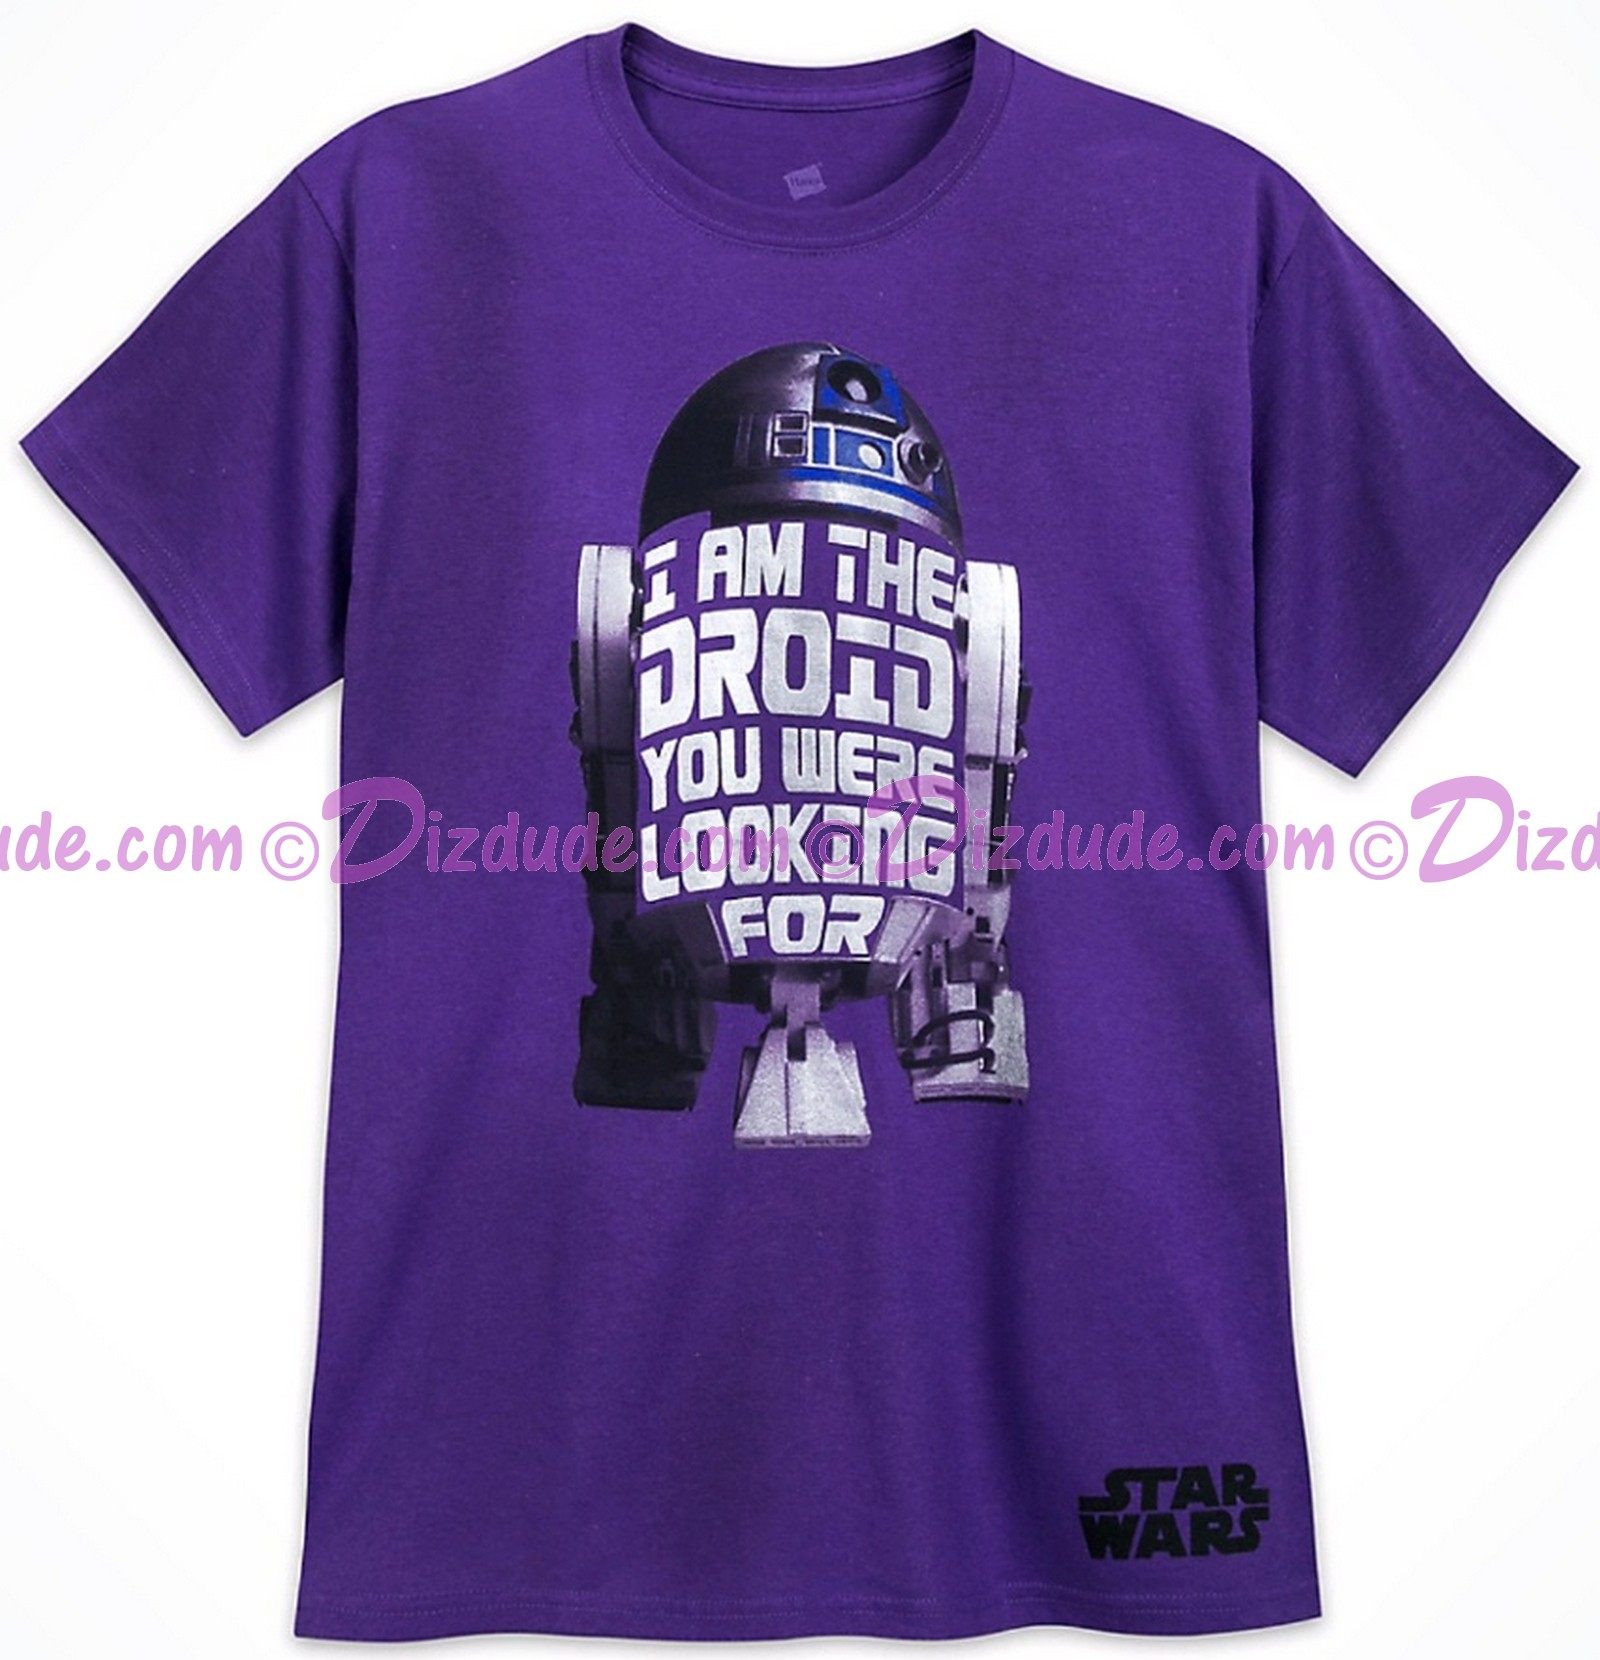 Disney Star Wars R2-D2 Droid Companion Adult T-Shirt (Tshirt, T shirt or Tee) © Dizdude.com